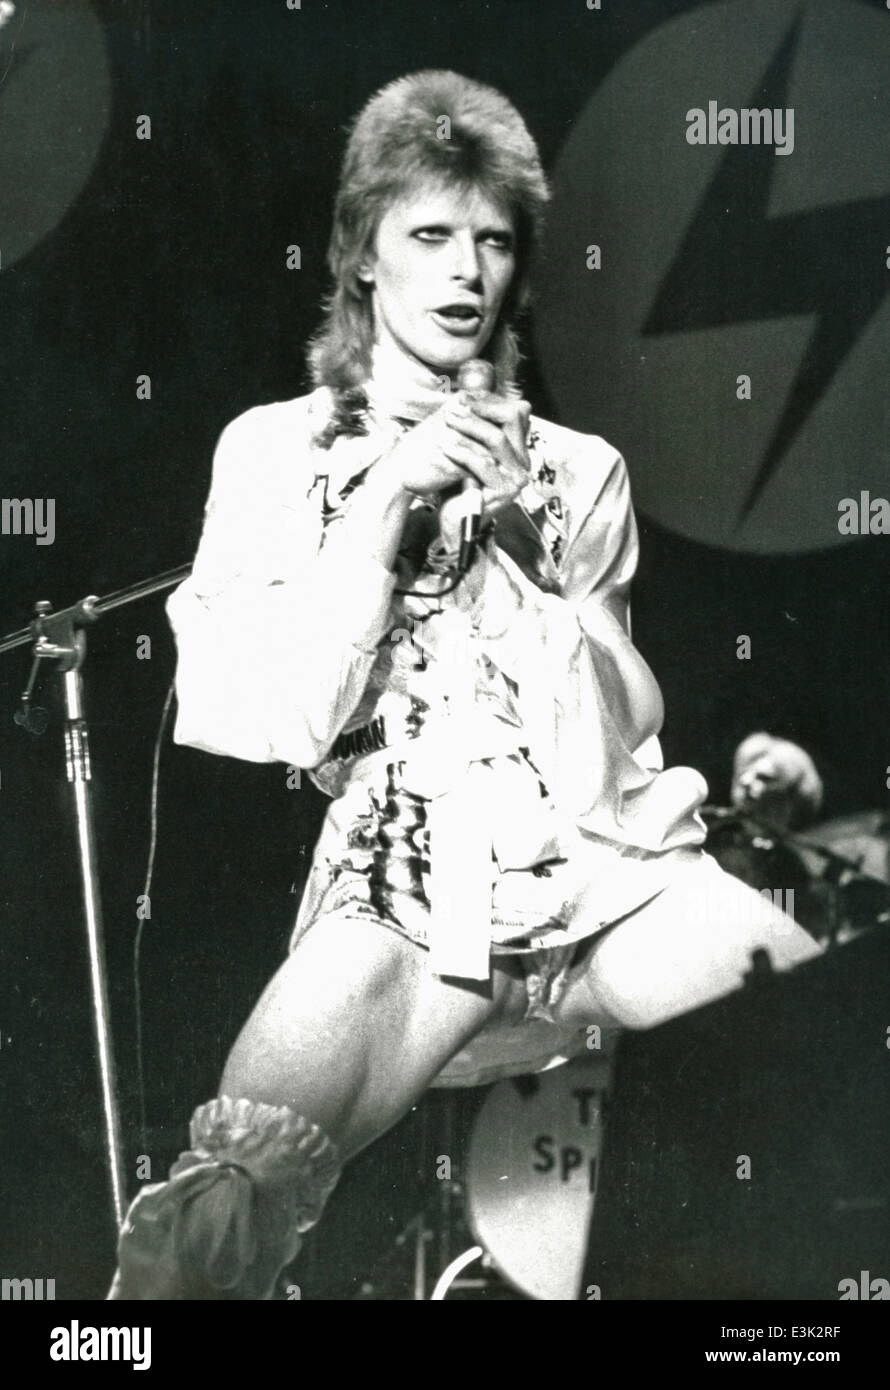 david bowie at hammersmith odeon,1973 - Stock Image